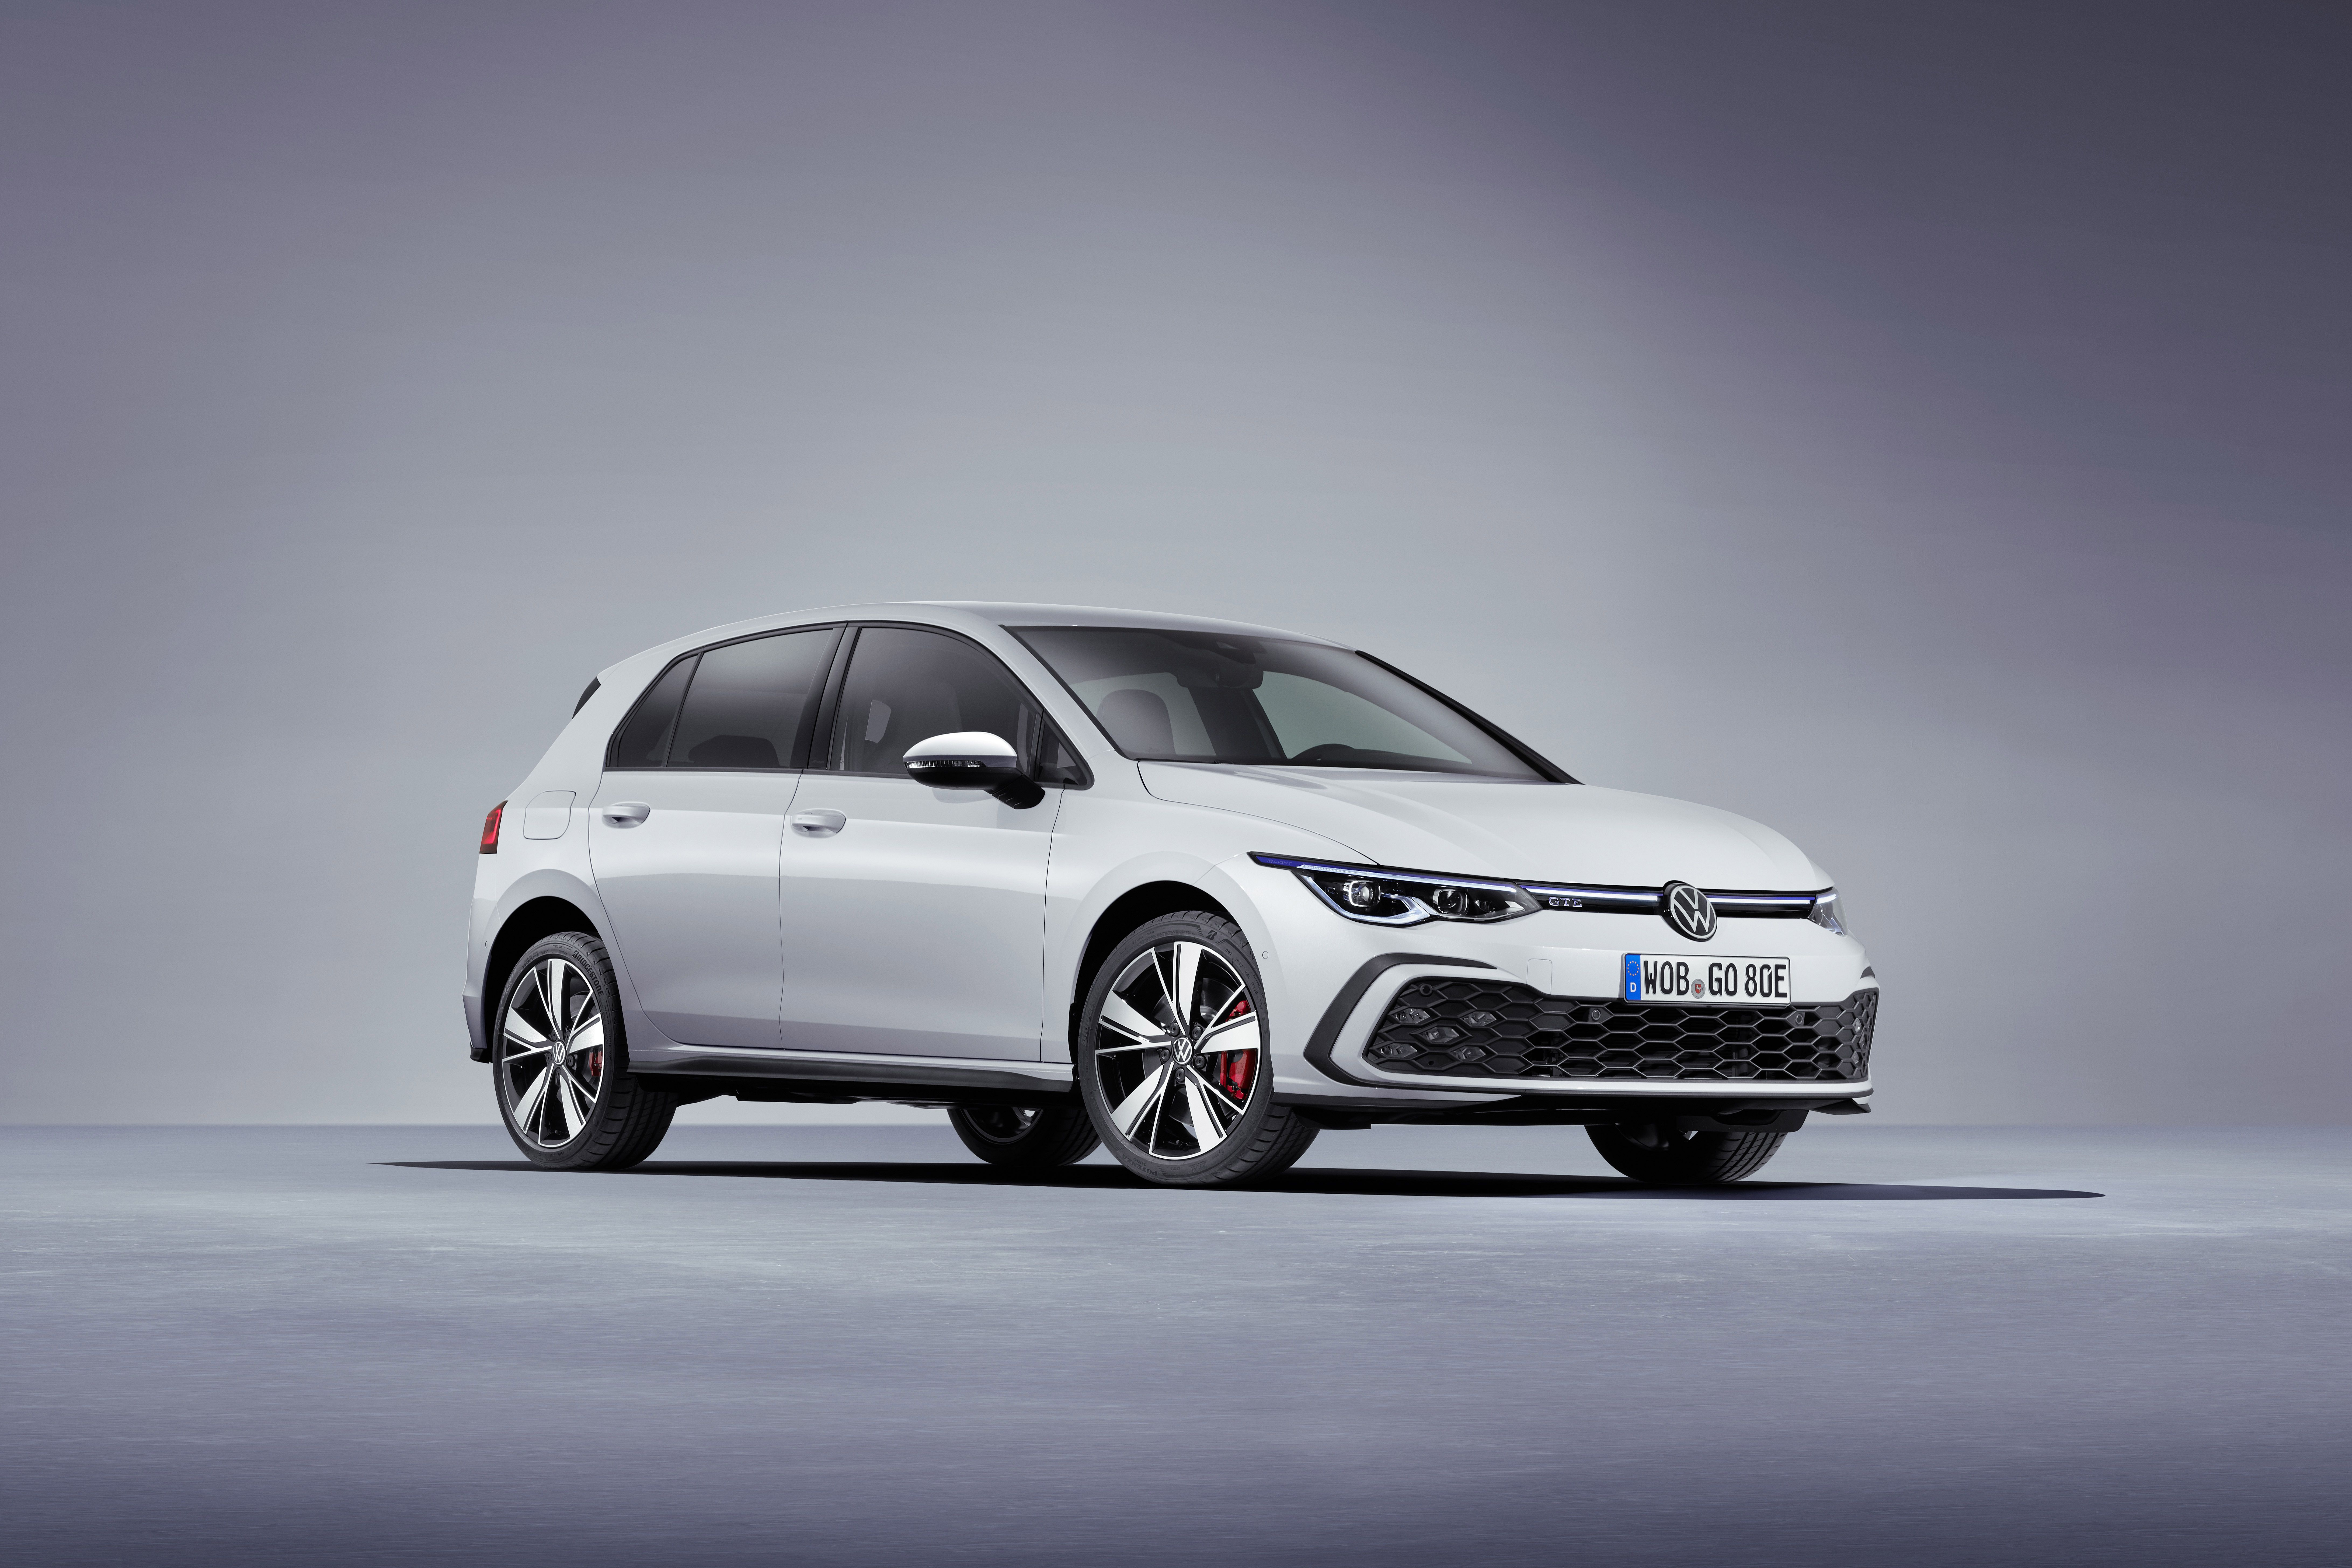 Vw Golf Gte Series 8 Factory Issued Press Photo 2 2020 In 2020